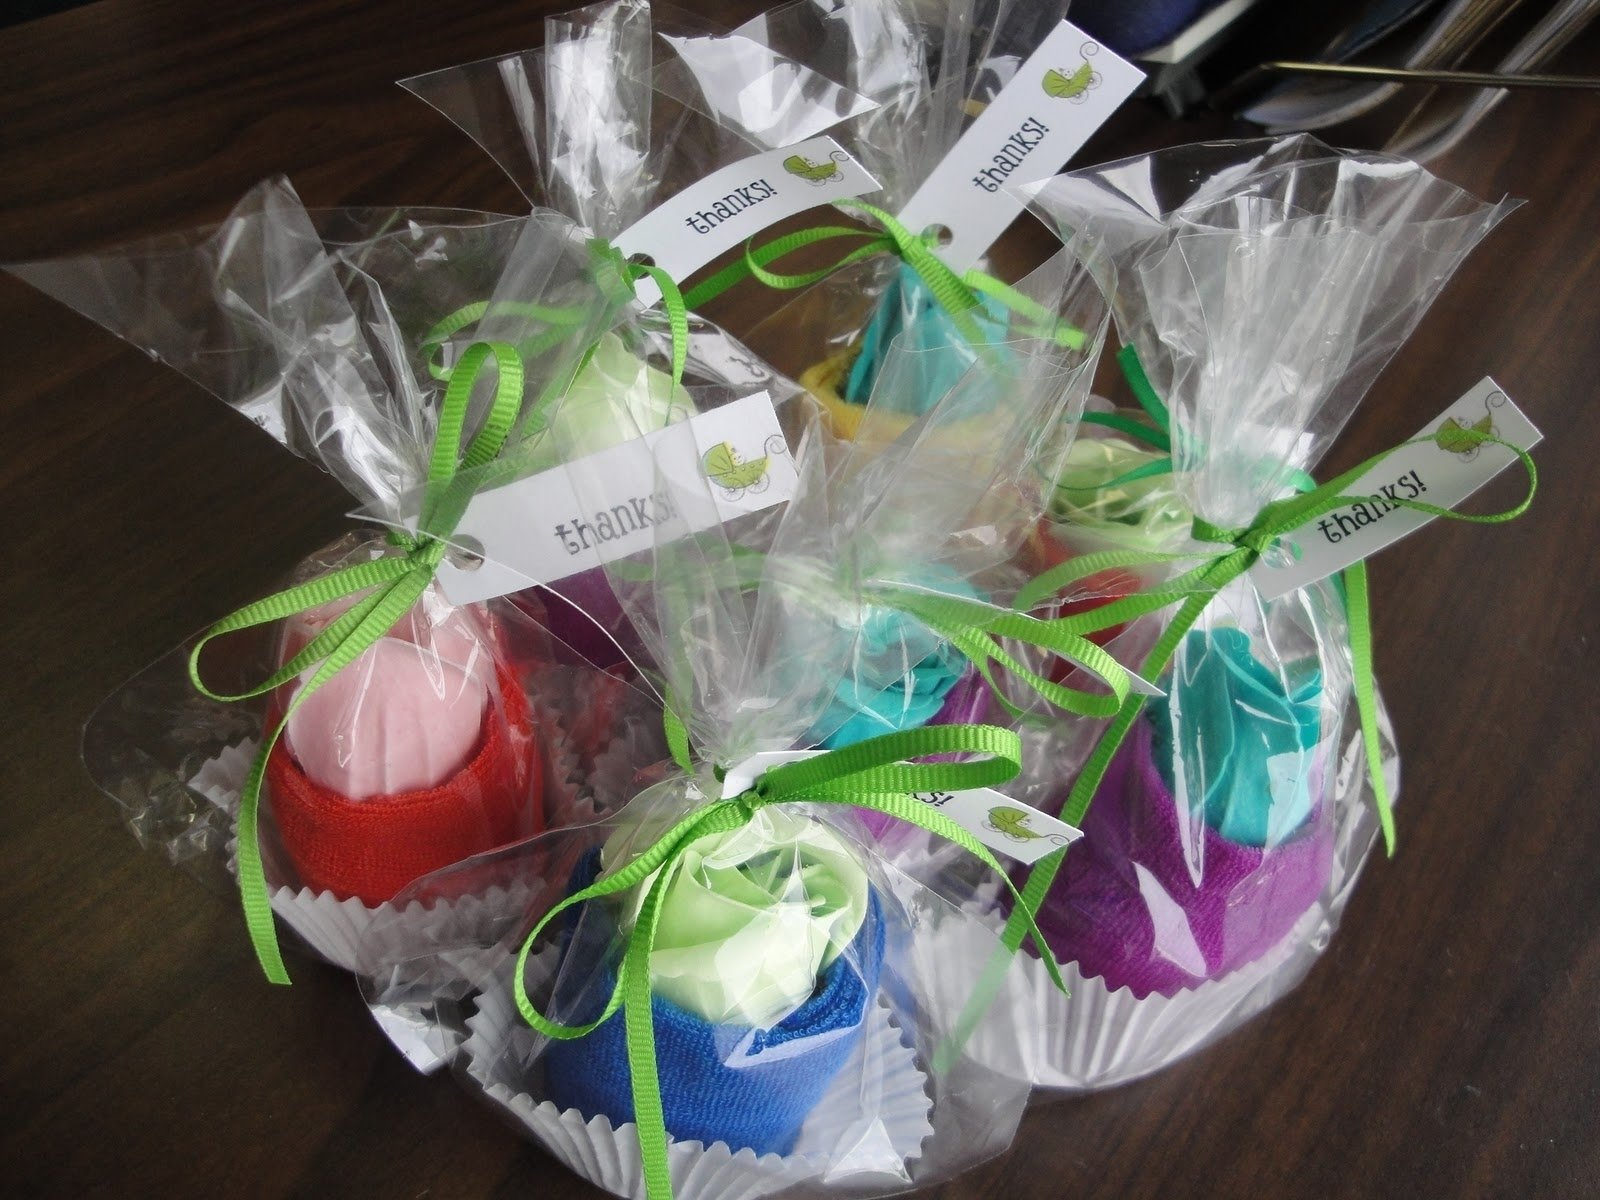 10 Perfect Baby Shower Party Favor Ideas baby shower food ideas baby shower ideas homemade favors 2020